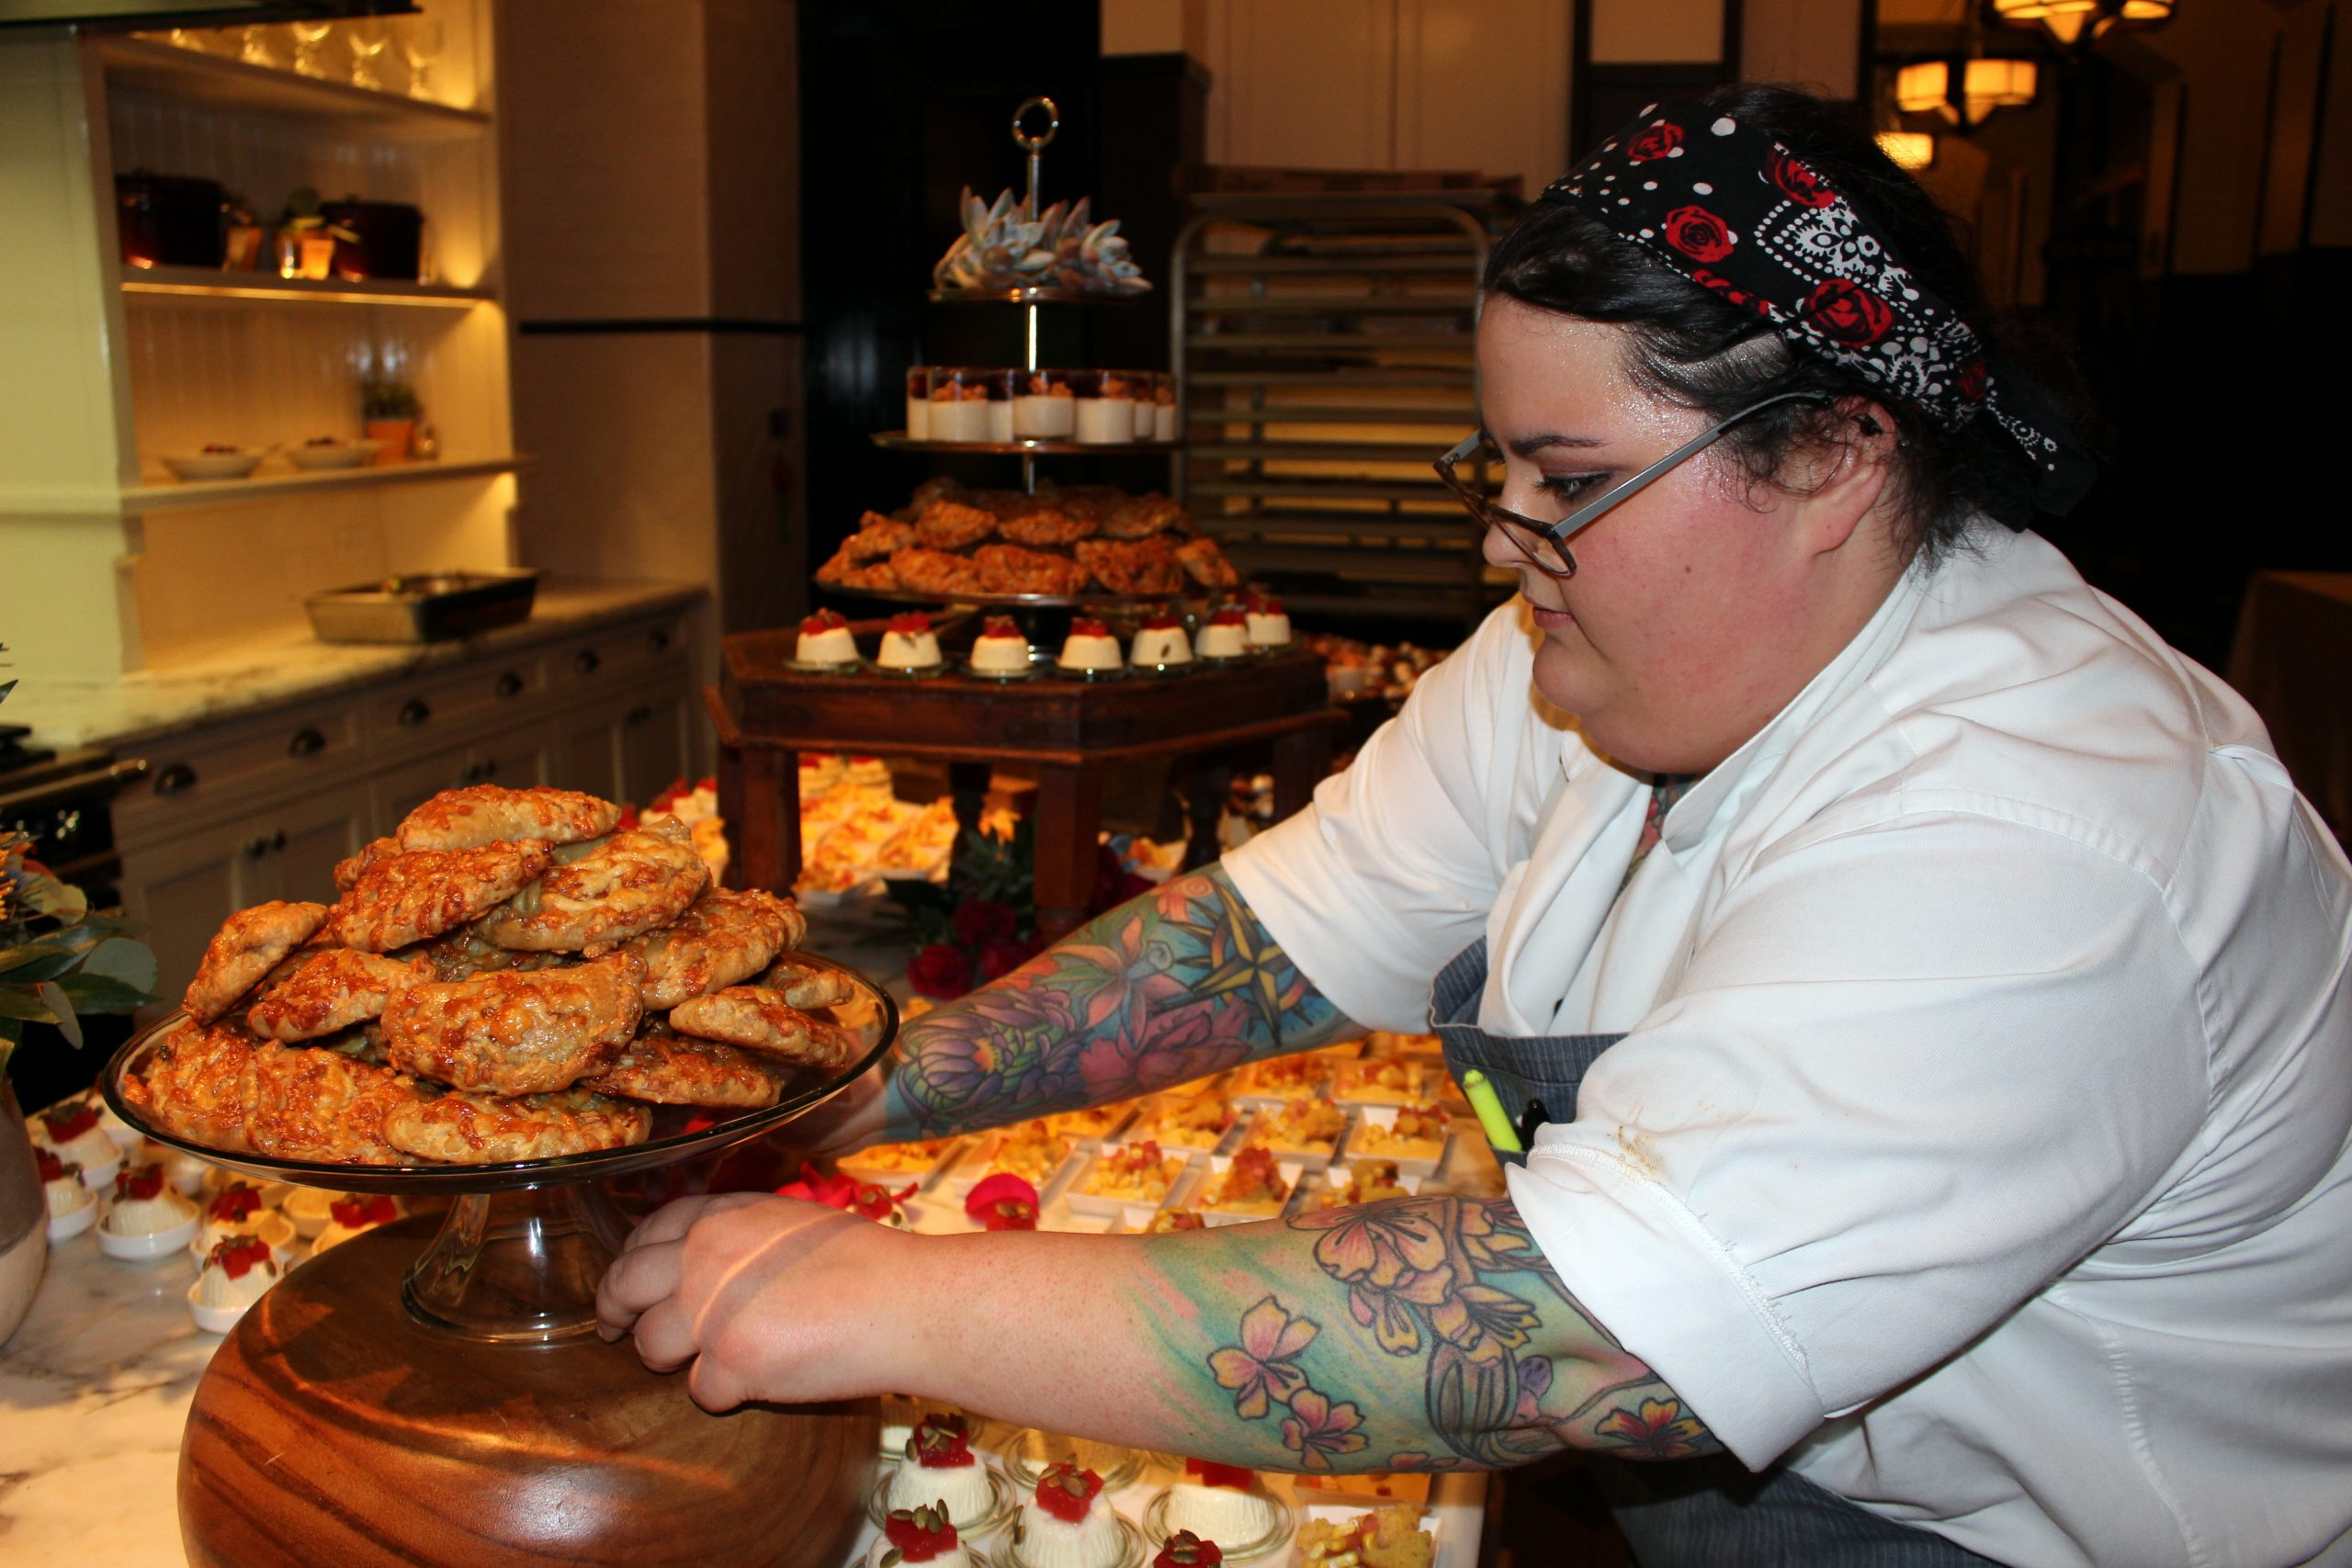 Jennifer Riesman from Hotel Emma puts the finishing touches on the dessert offerings for Ven a Comer.